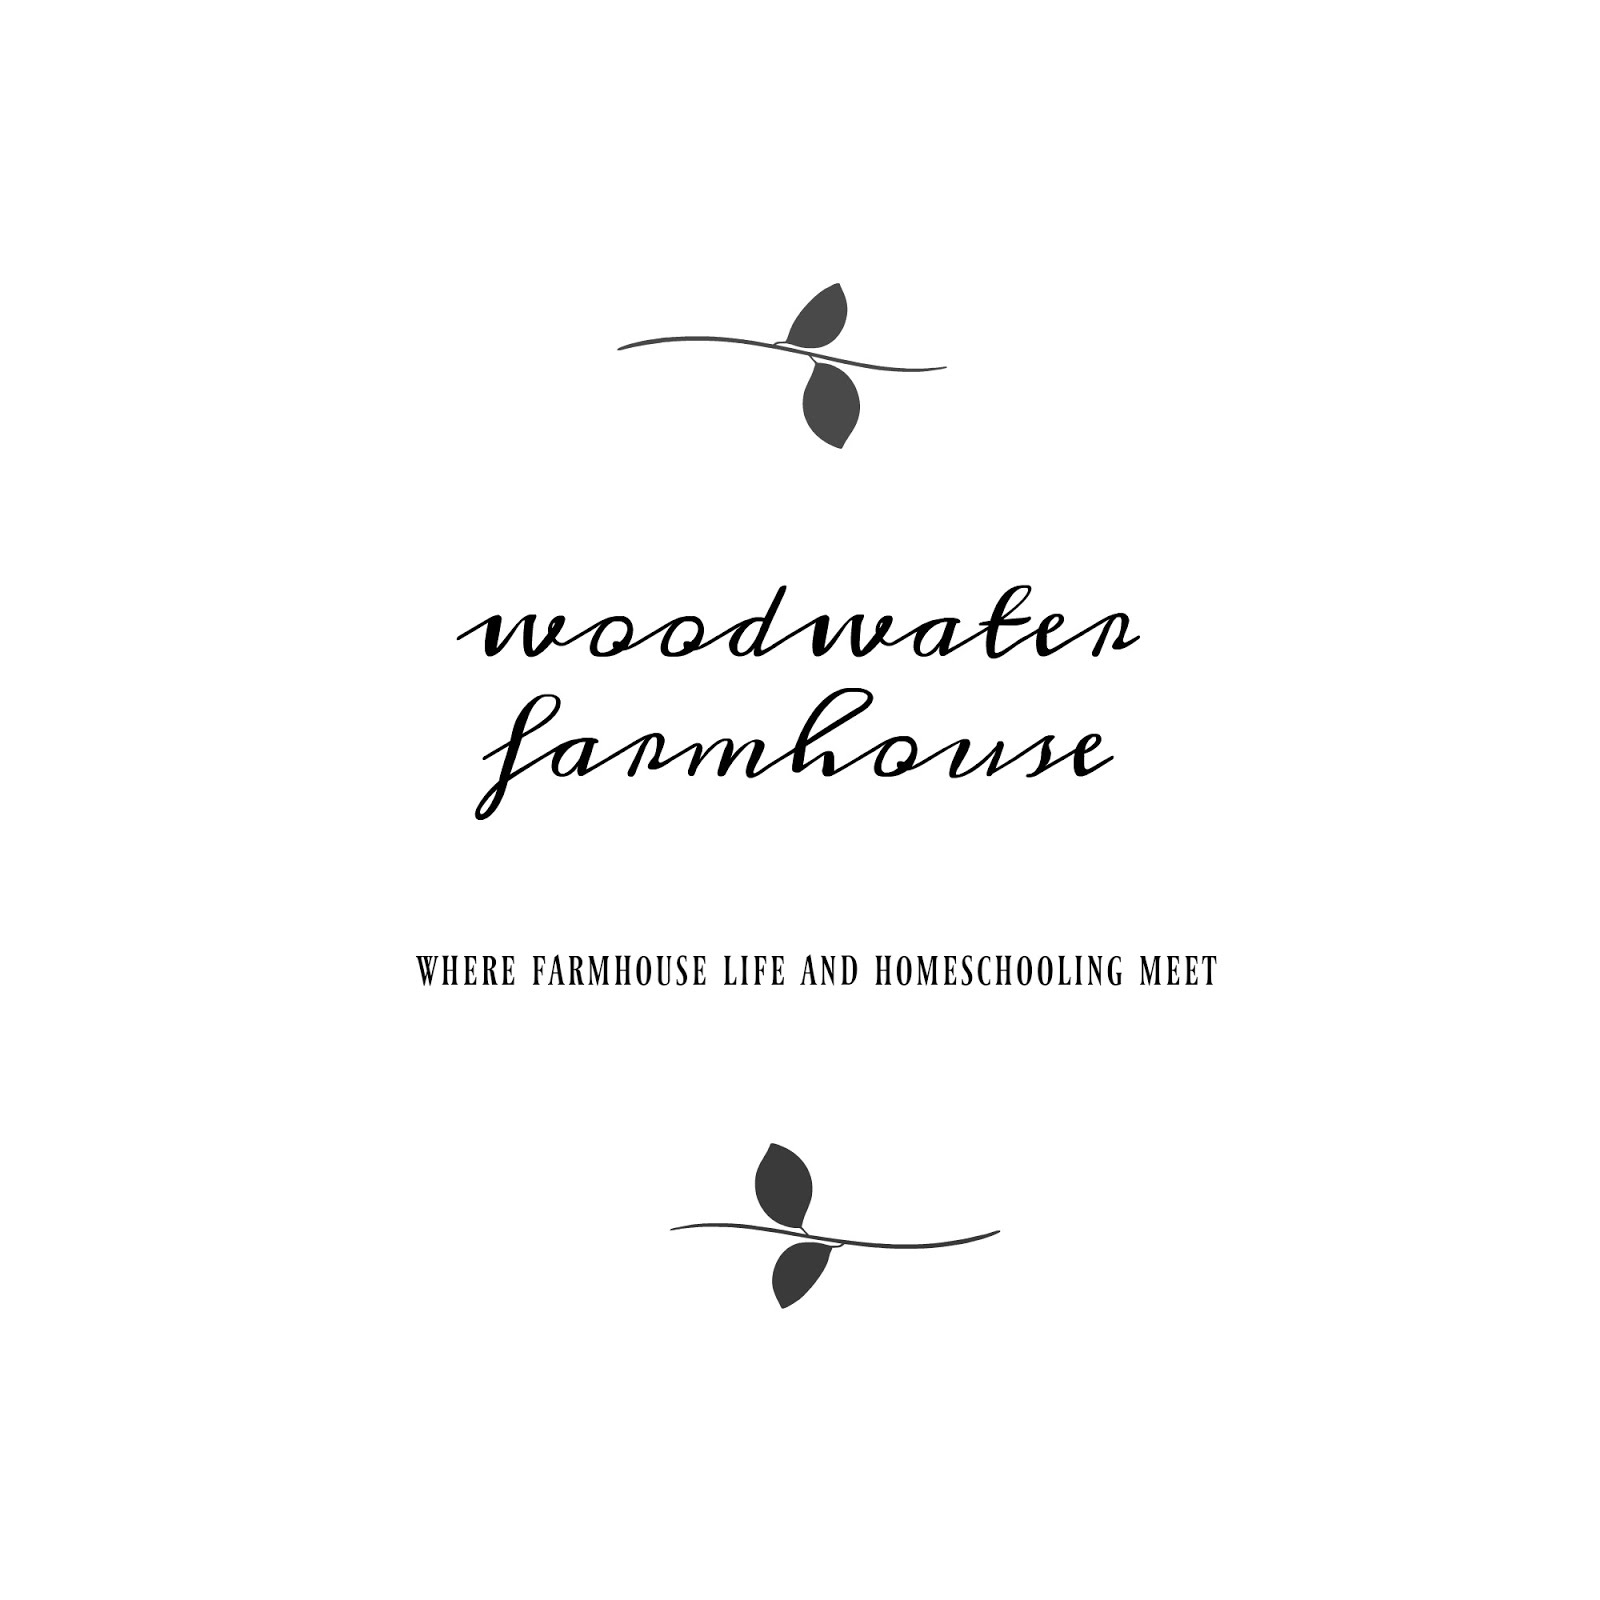 Woodwater Farmhouse